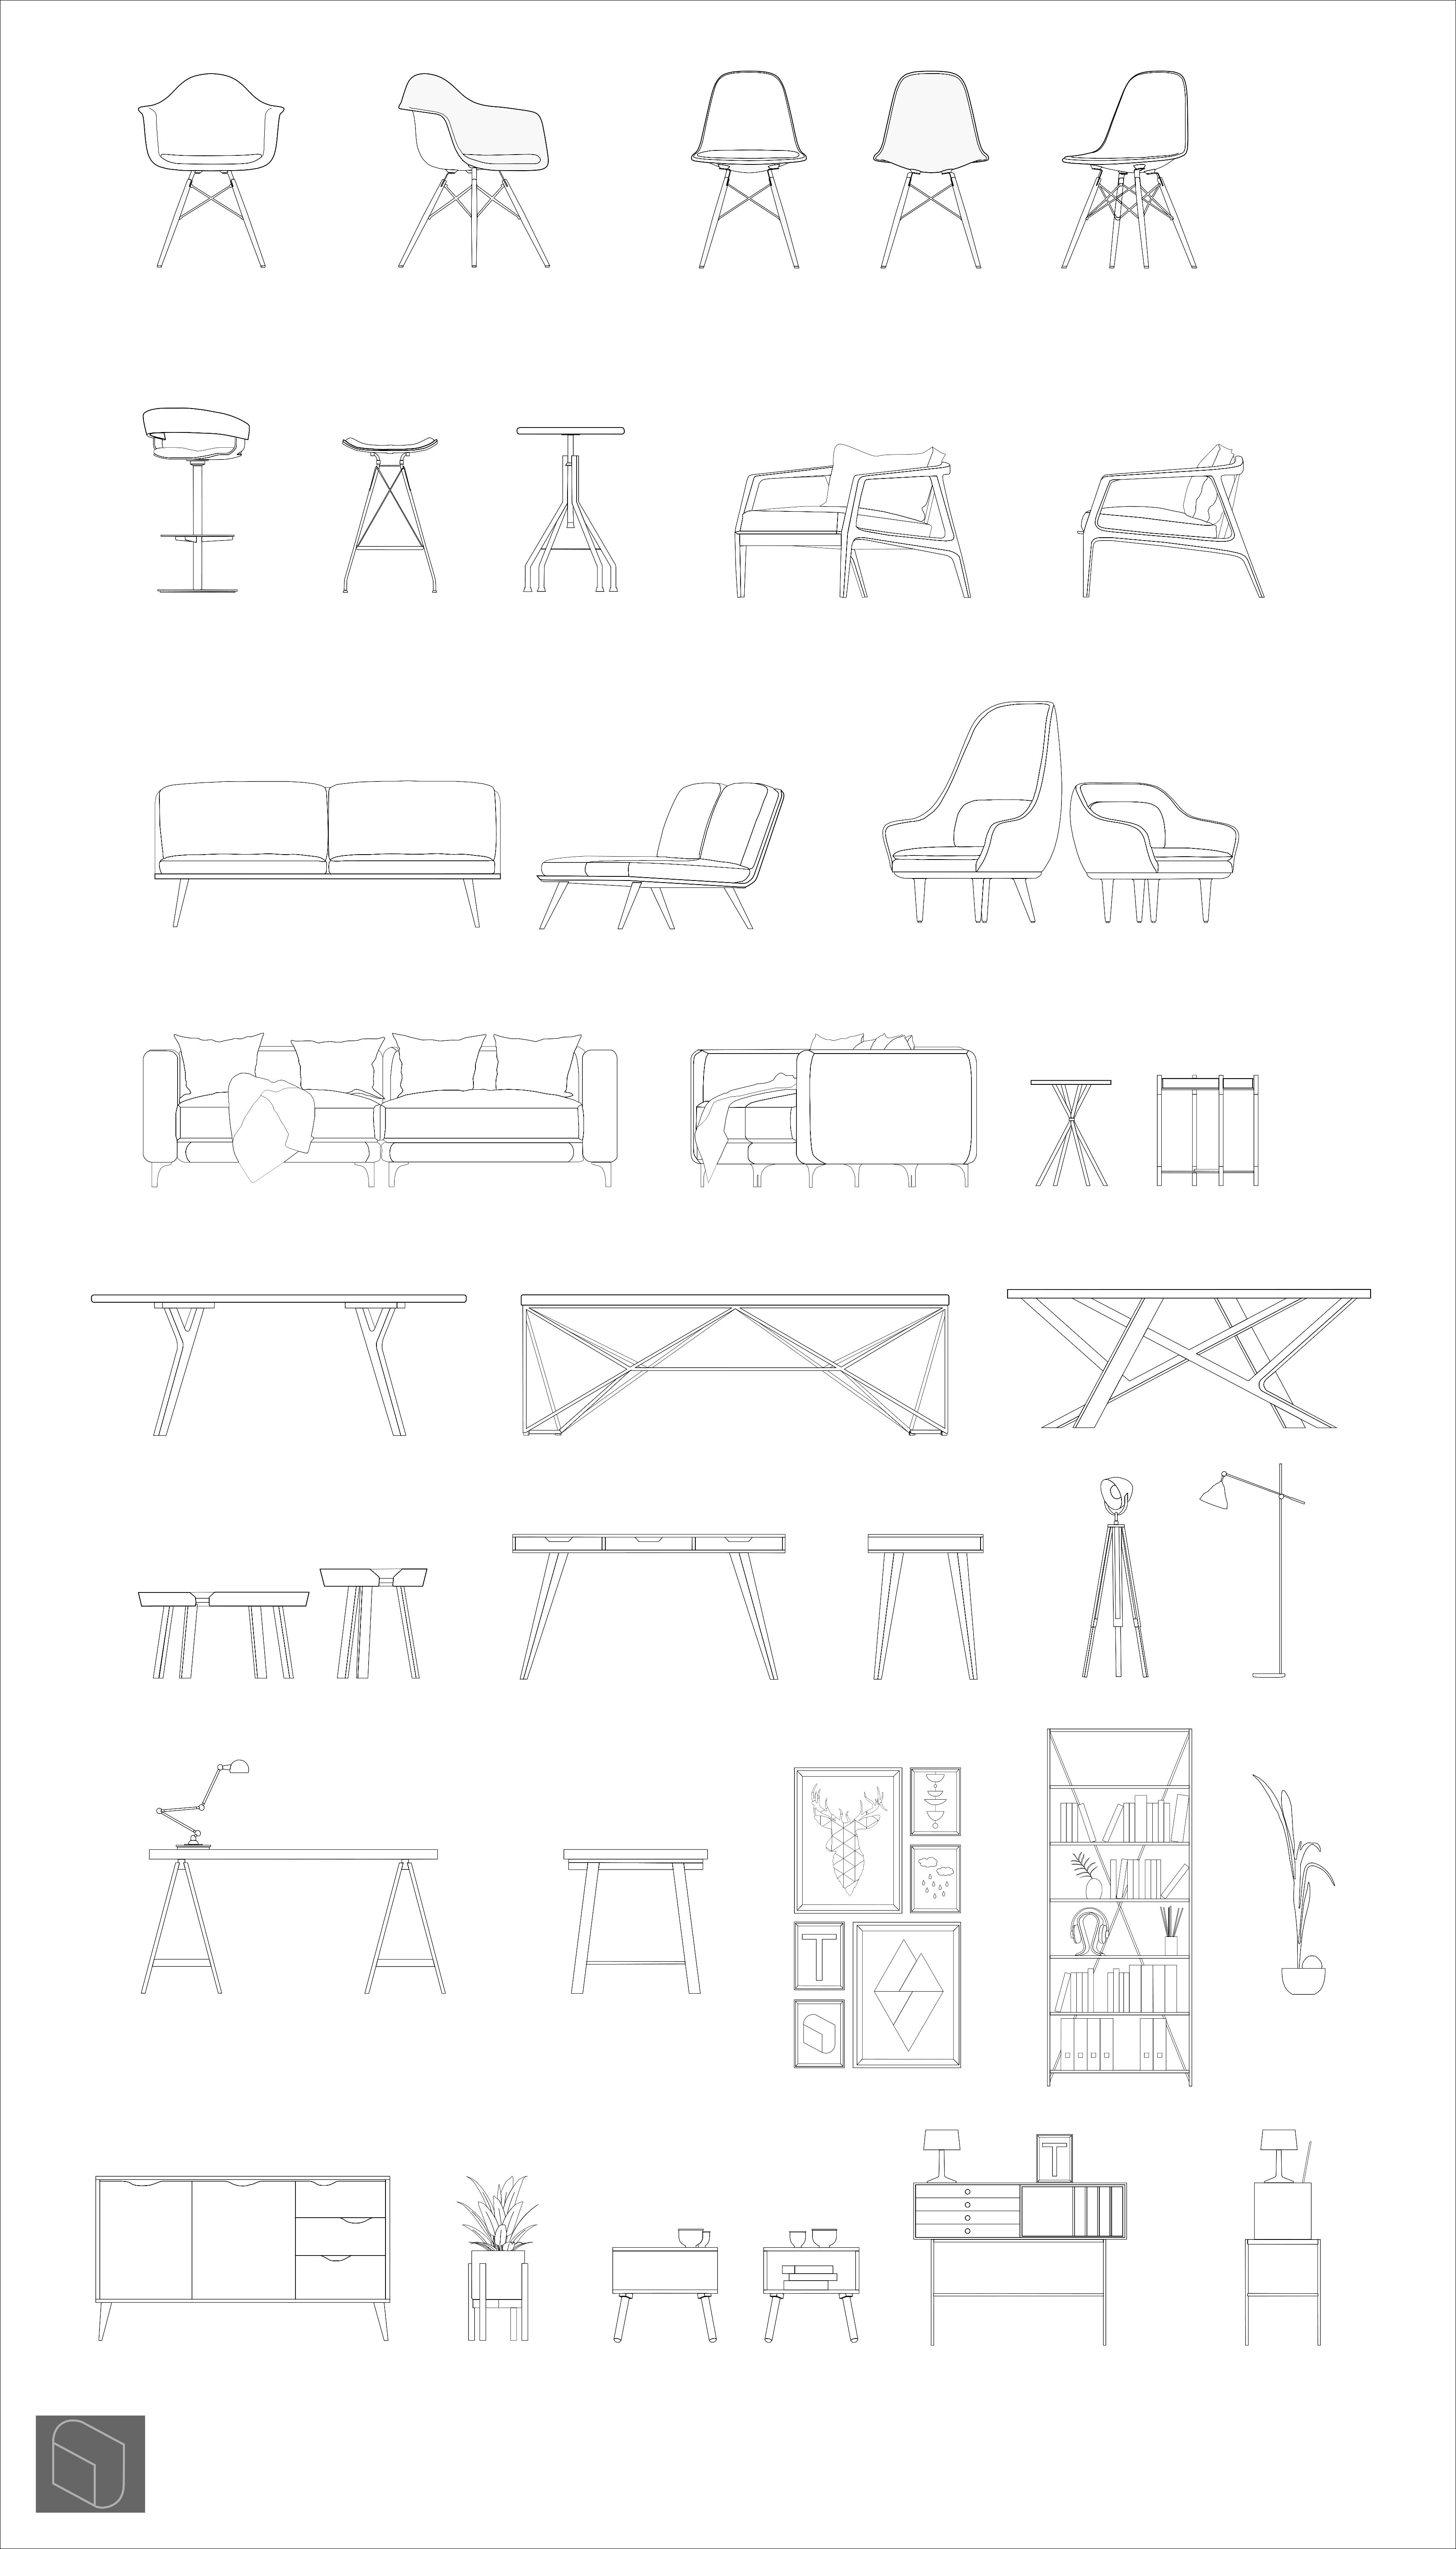 Furniture Cad Online Modern Furniture Cad Dwg Drawings | For More; Www.toffu.co